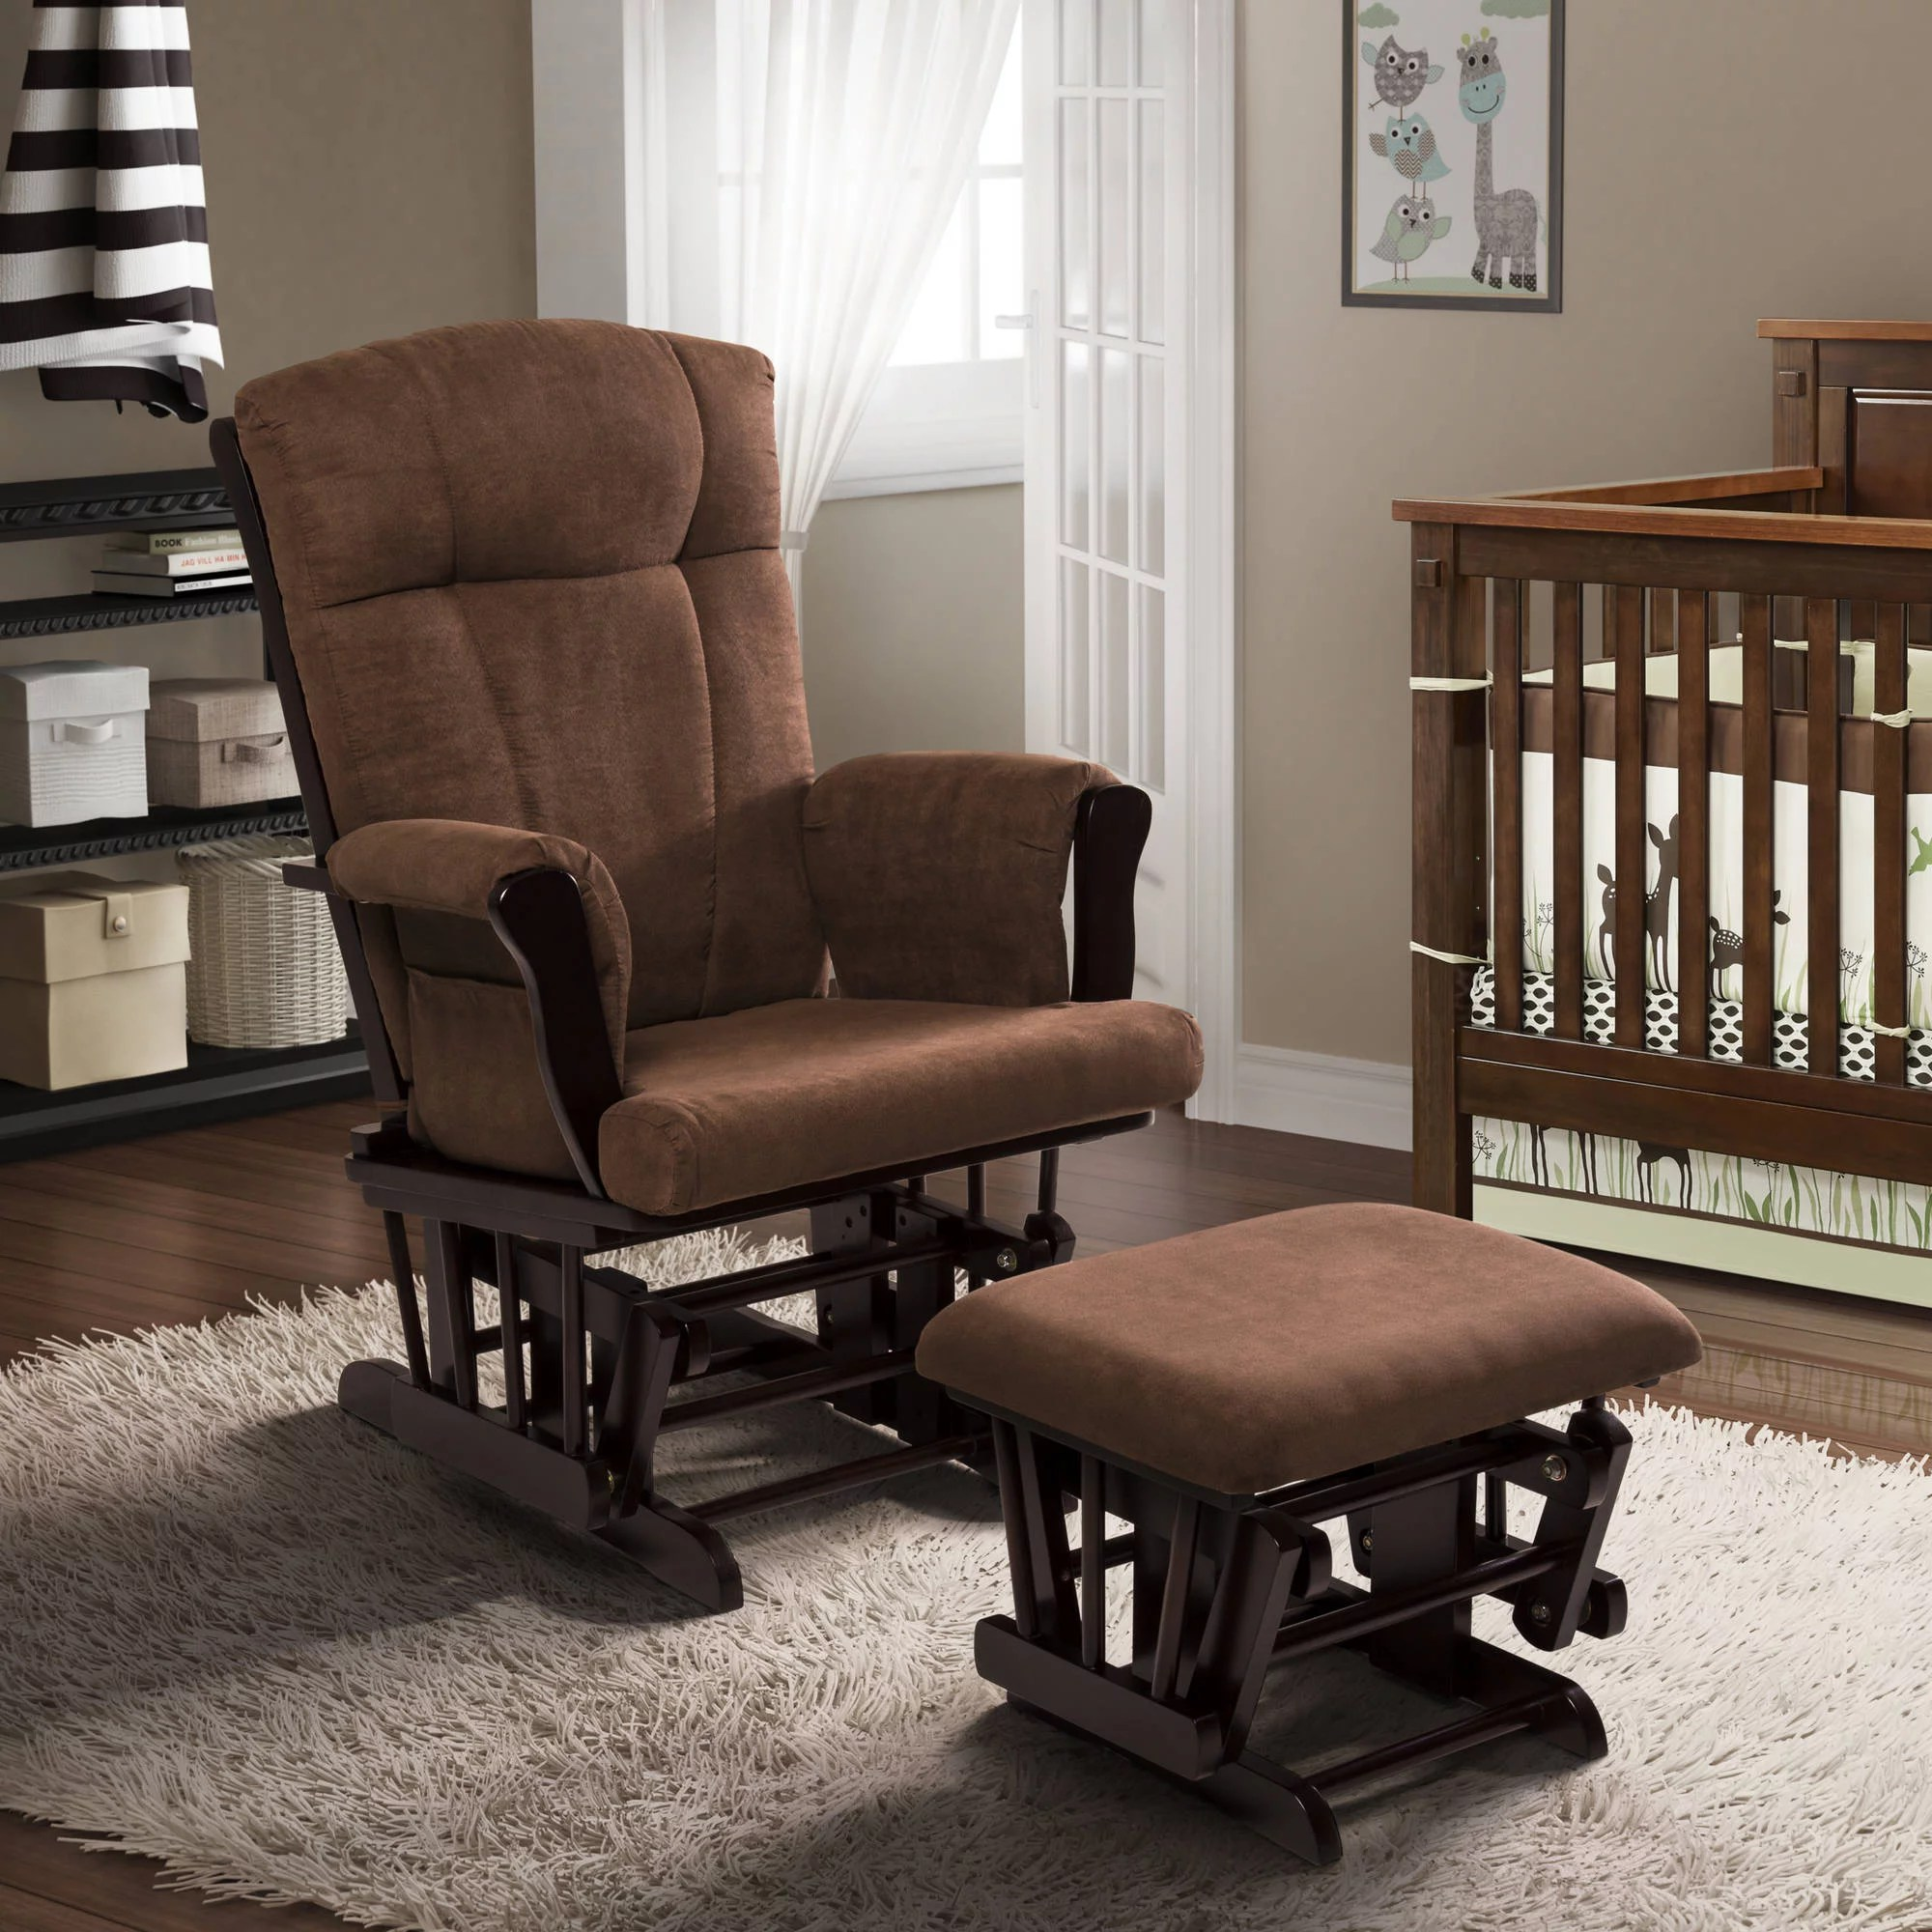 Baby Nursery Chairs Baby Relax Harbour Glider Rocker And Ottoman Espresso With Beige Cushions